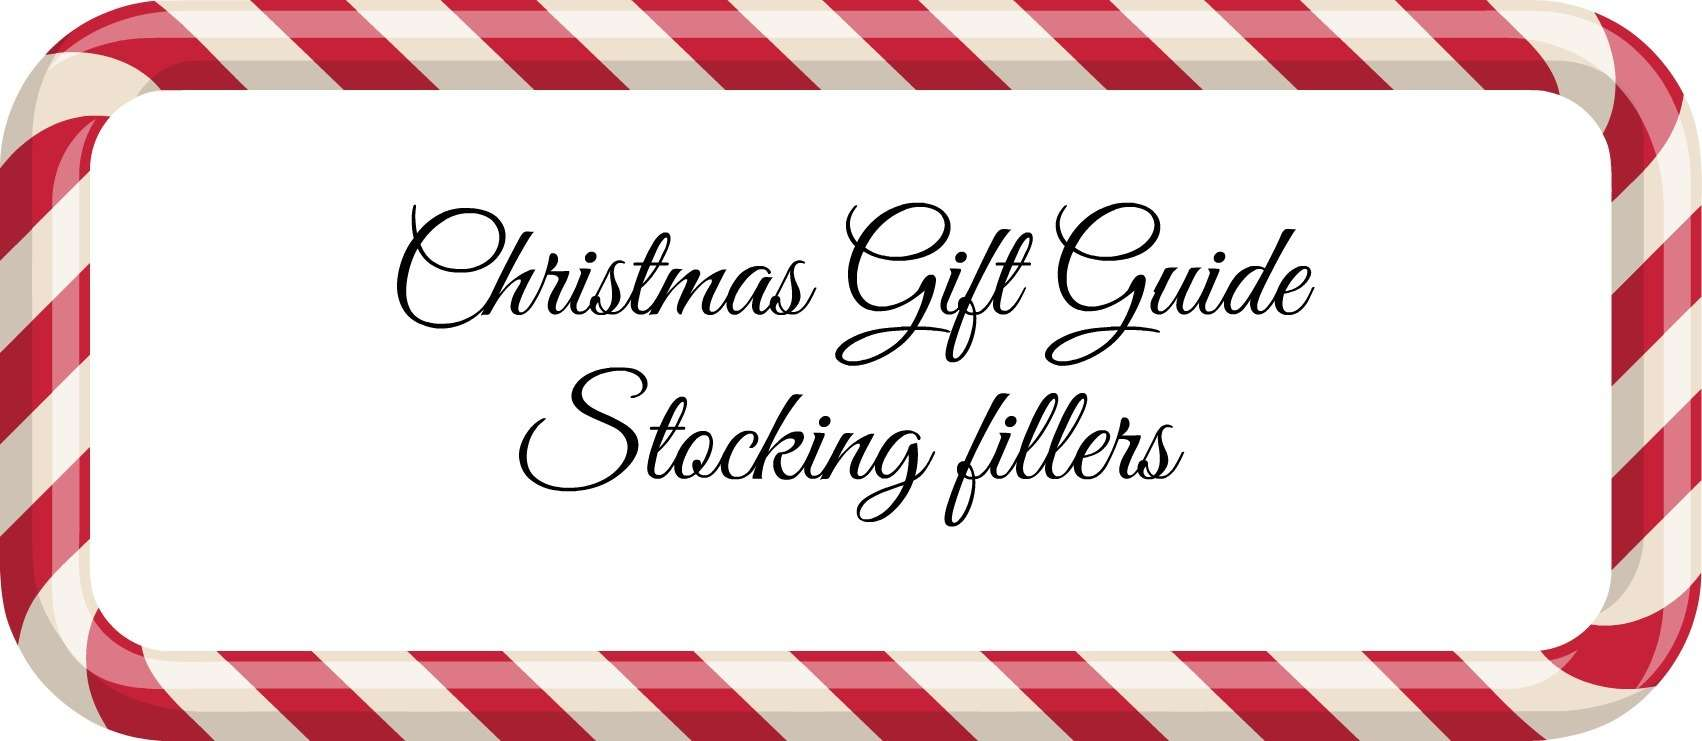 Gift Guide Stocking Fillers